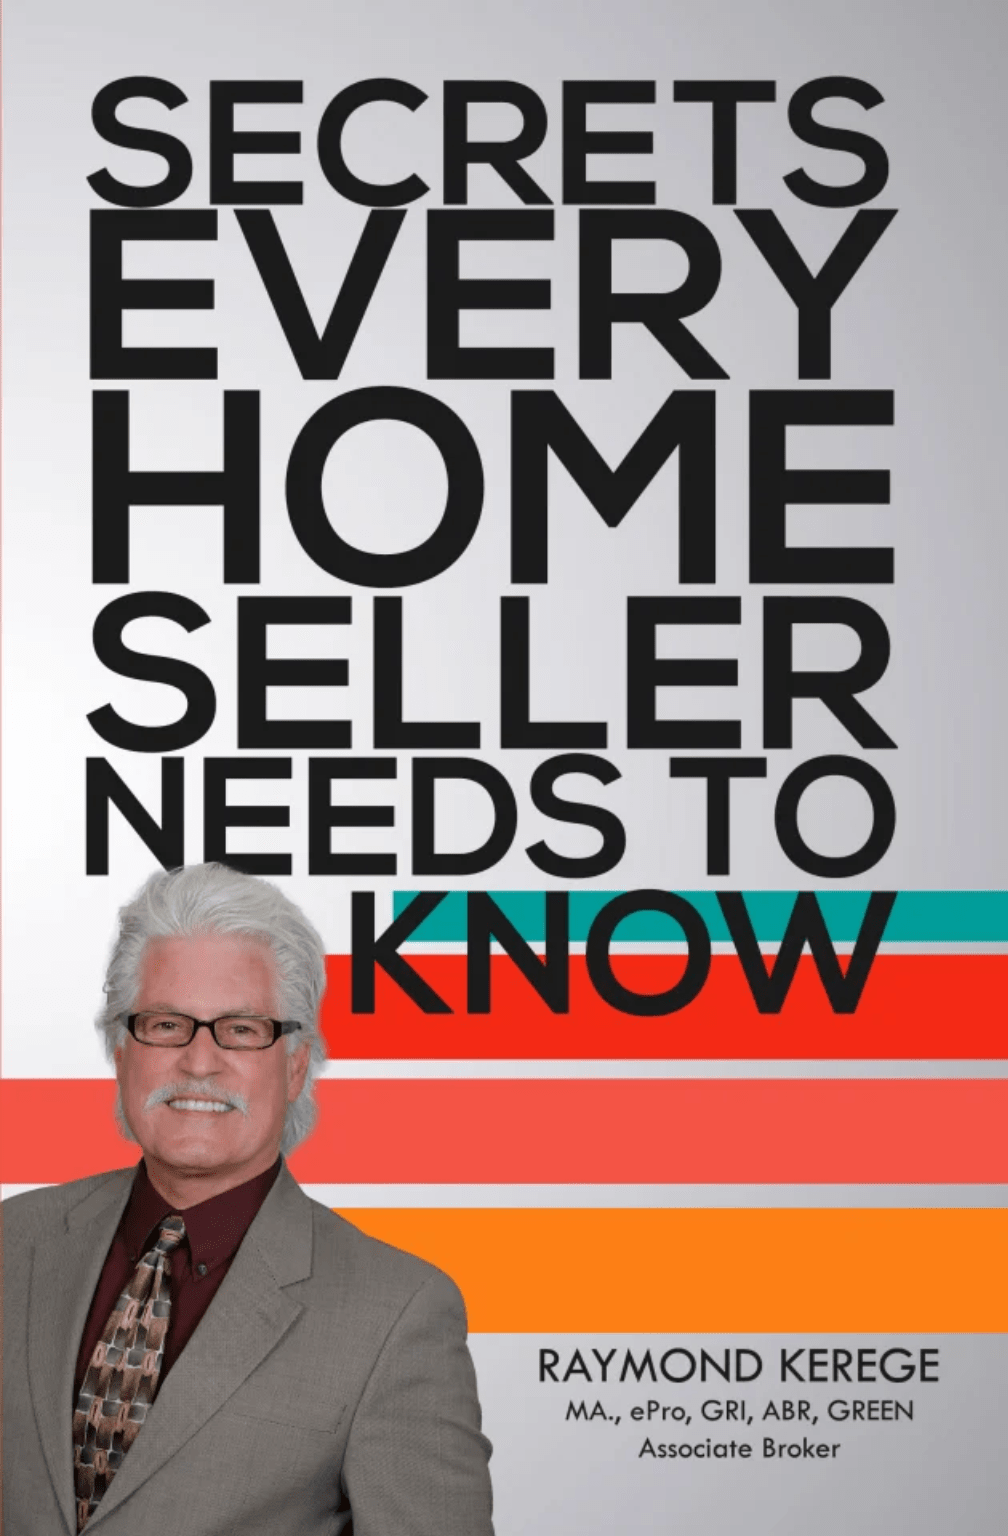 Secrets Every Home Seller Needs To Know